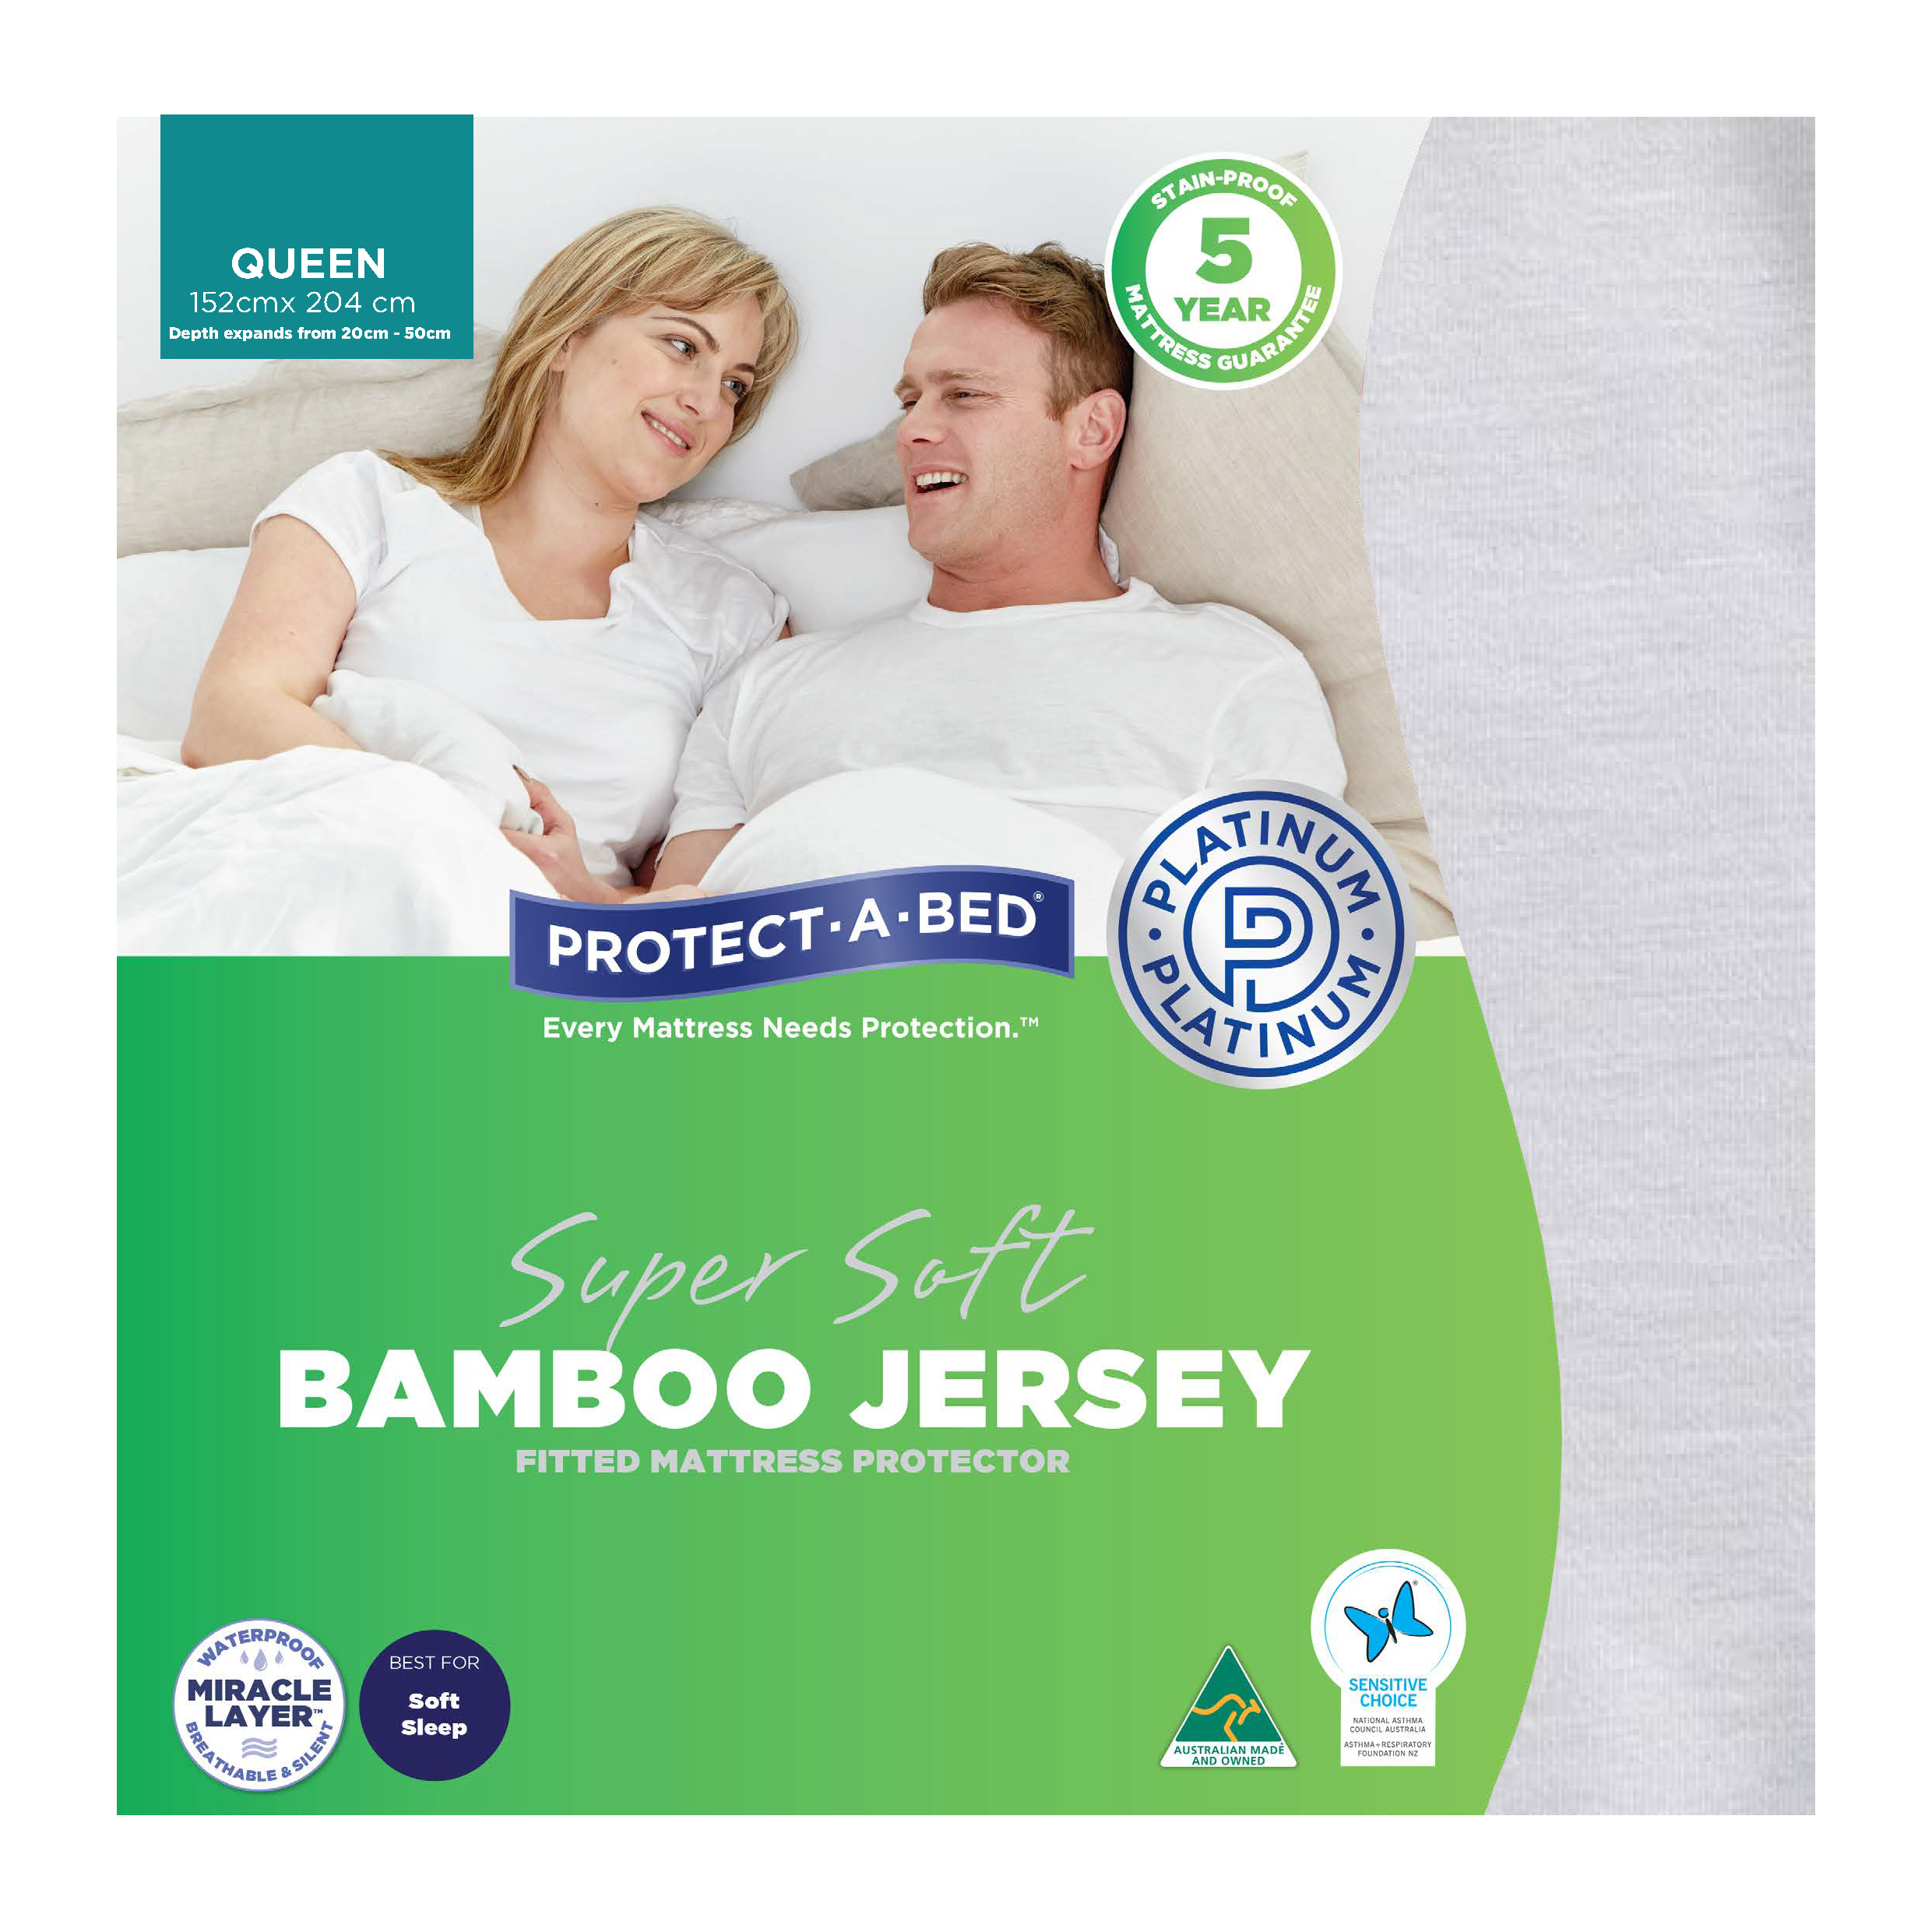 Protect-A-Bed Bamboo Jersey – Queen Mattress Protector